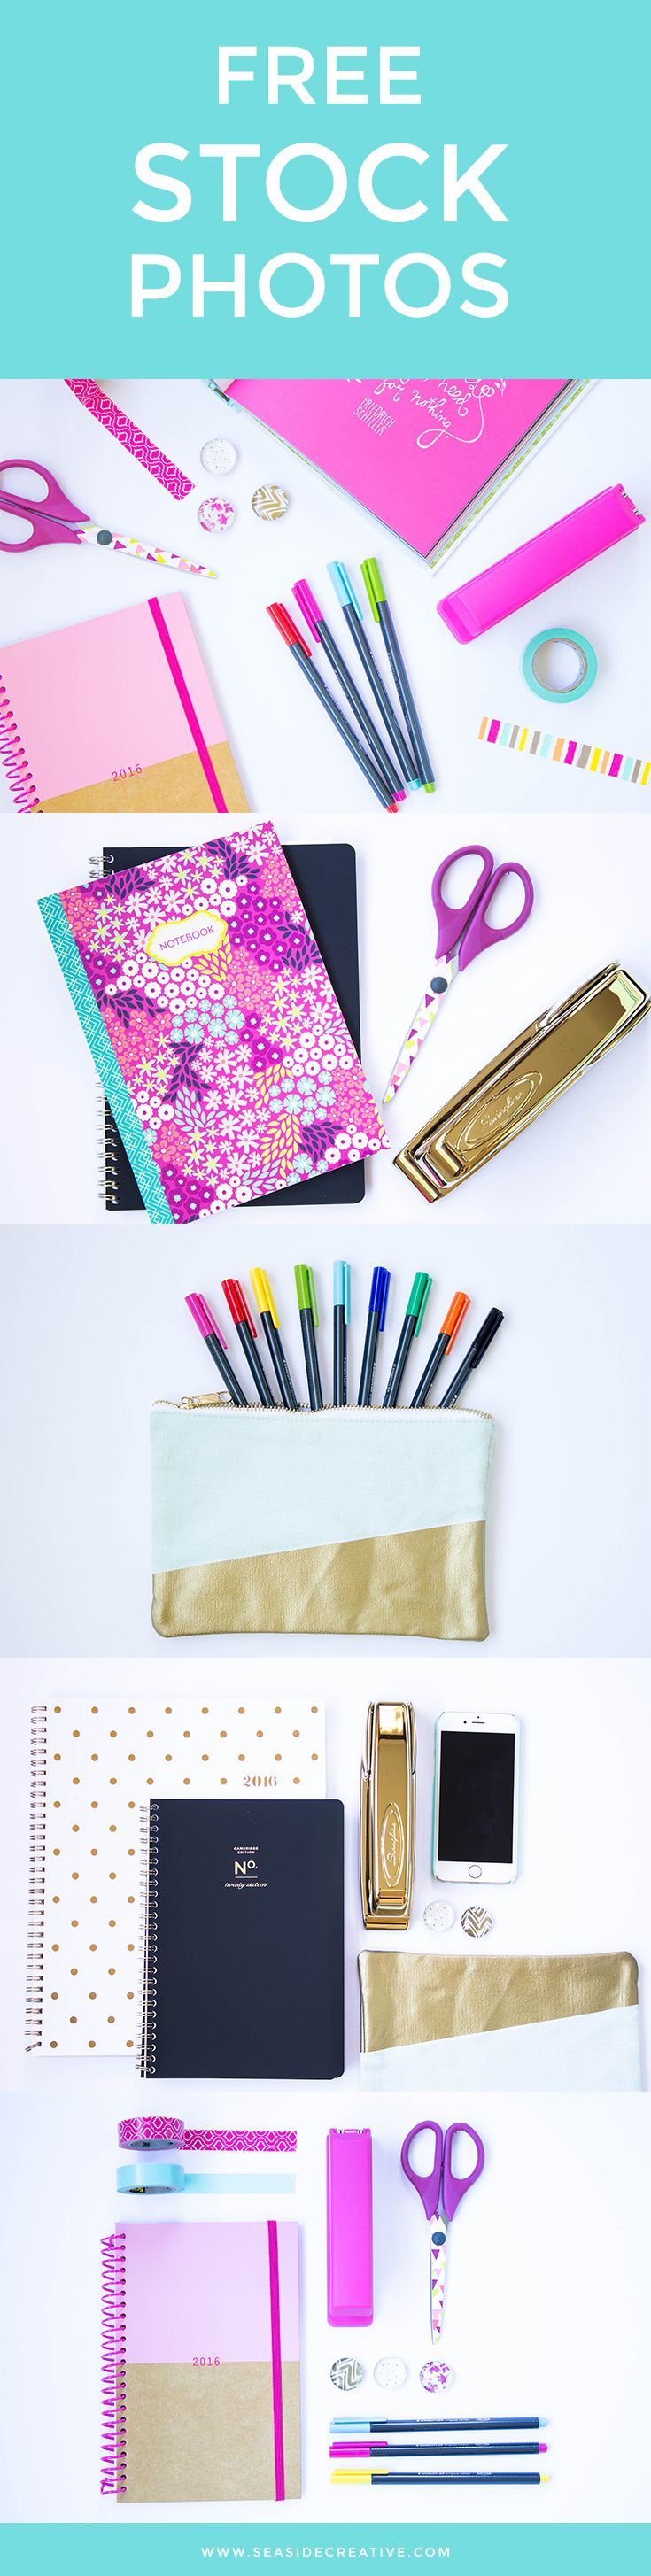 210 best graphic freebies images on pinterest free printables